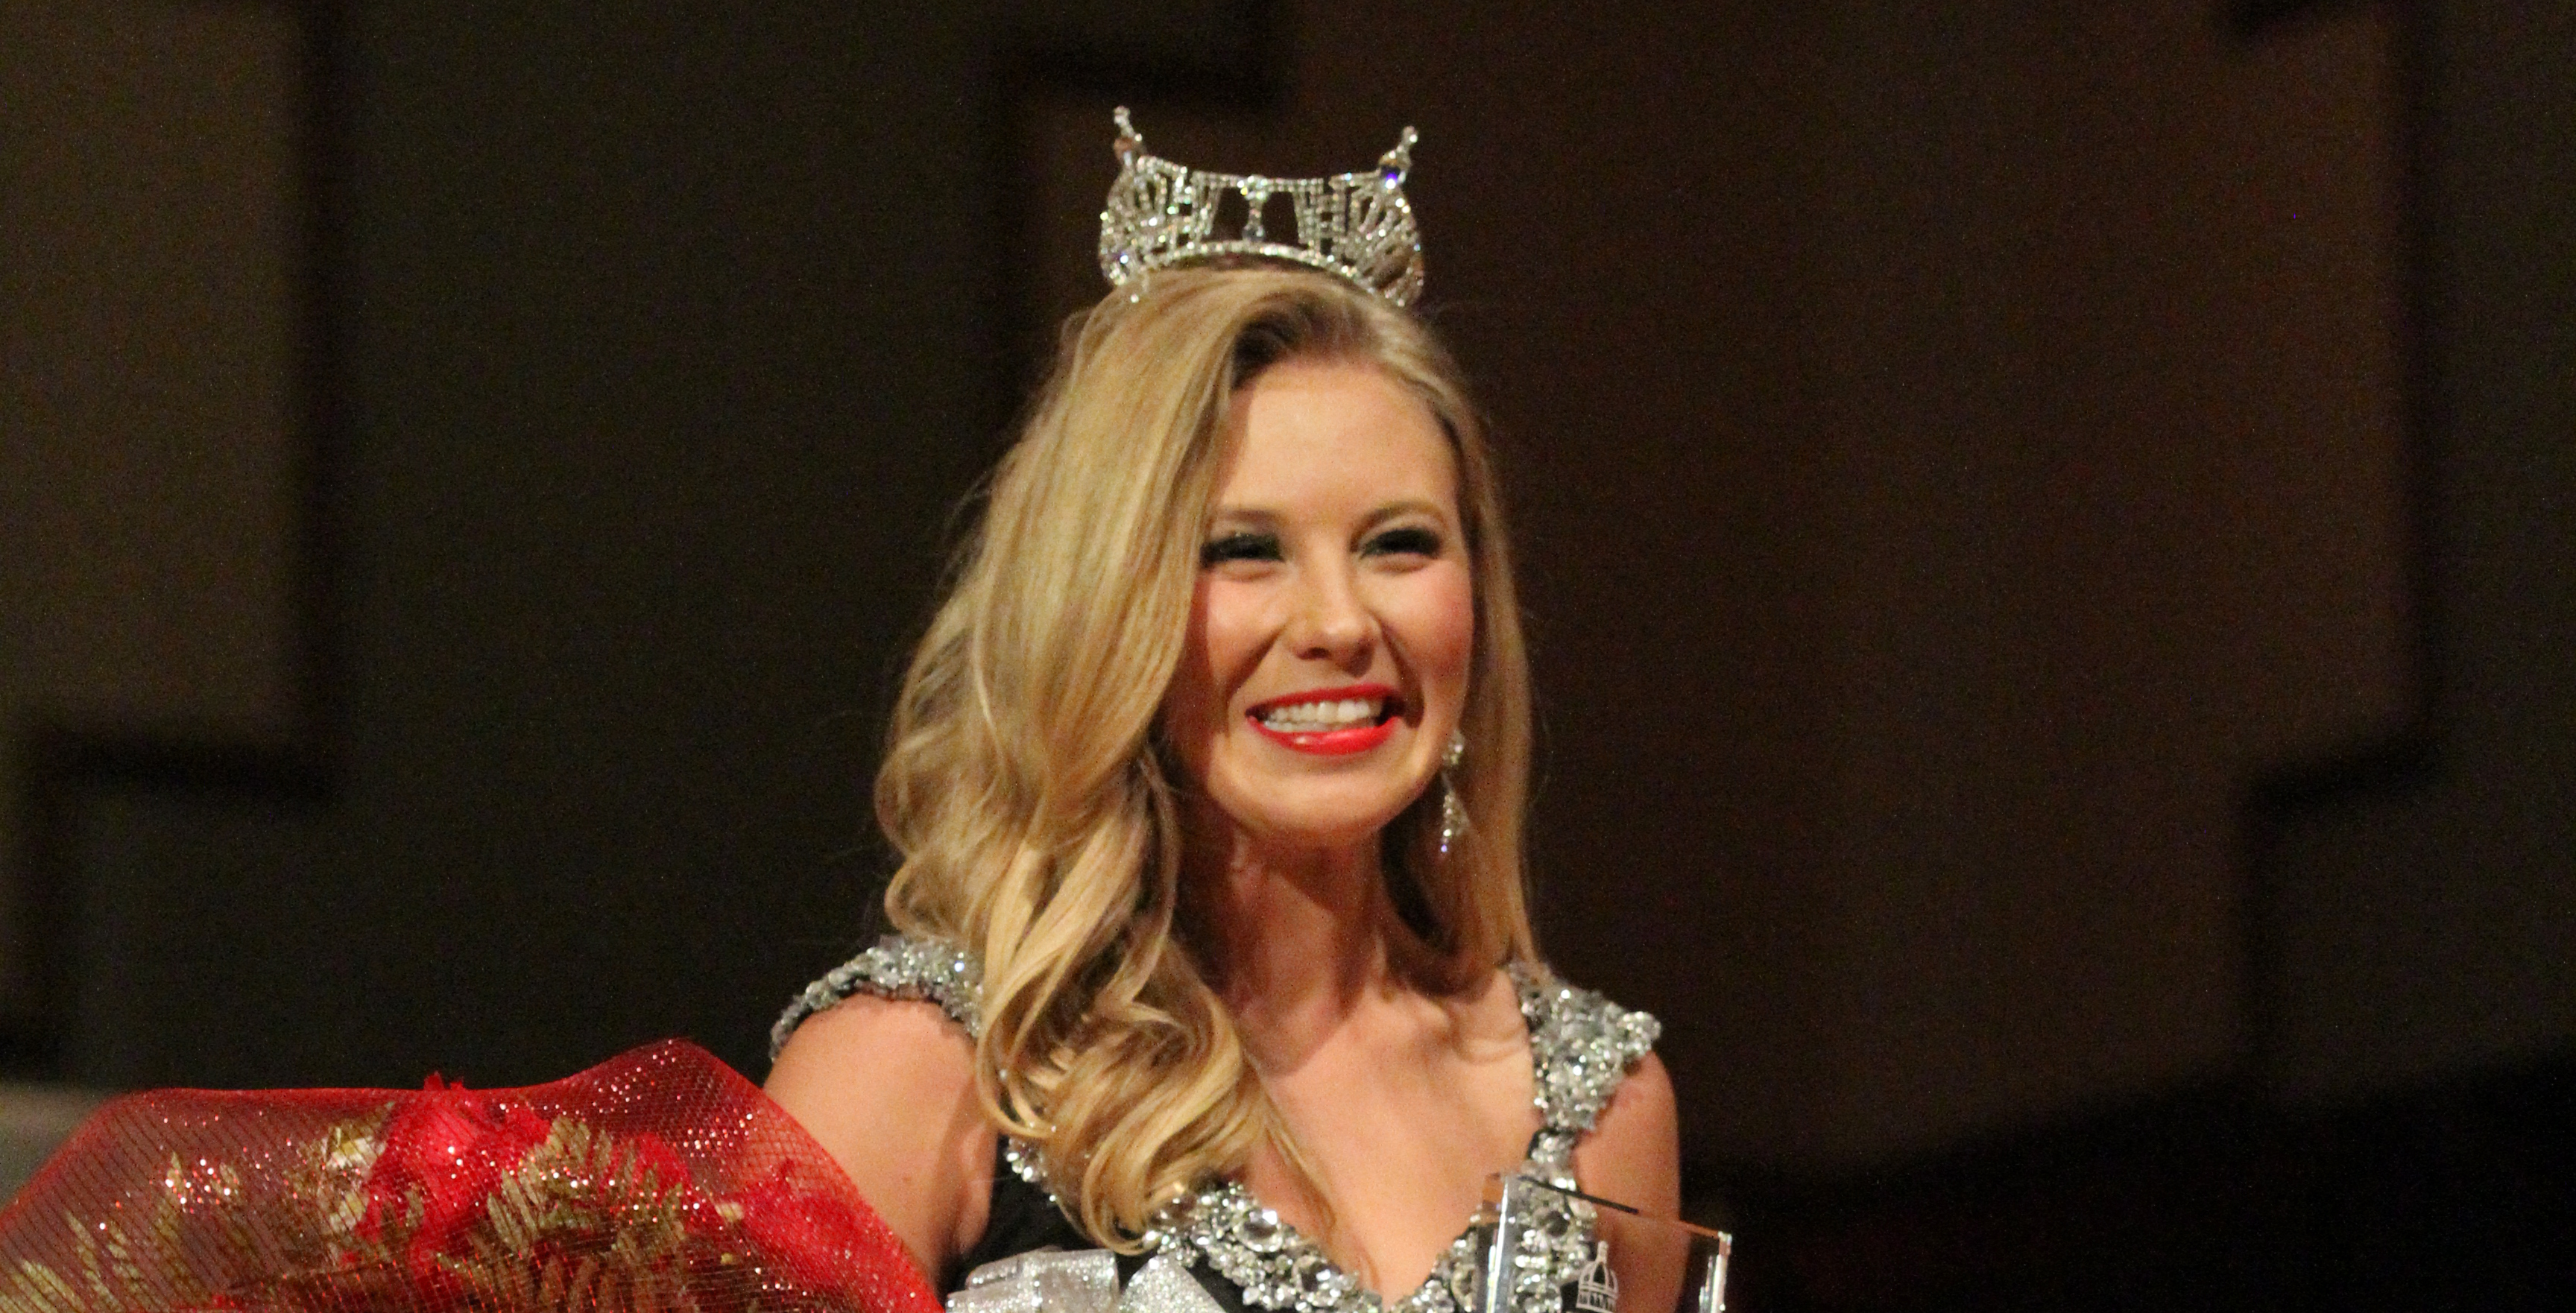 Miss University of Southern Mississippi Pageant 2015